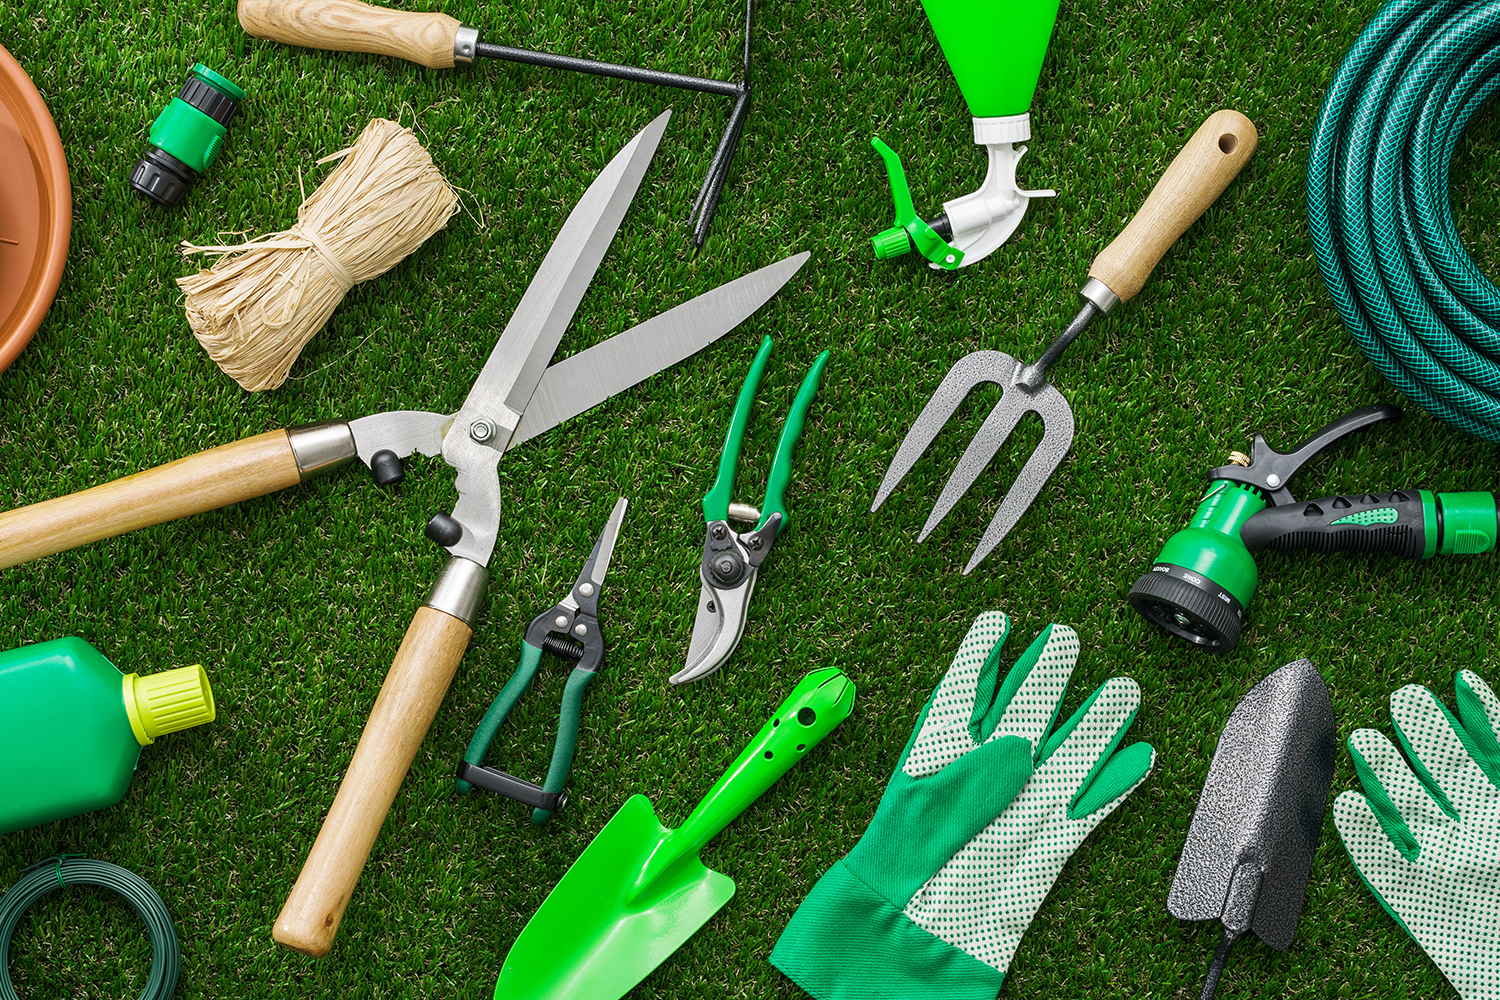 The Landscape Specialist not only offers property care and maintenance, but also professional landscape design services.